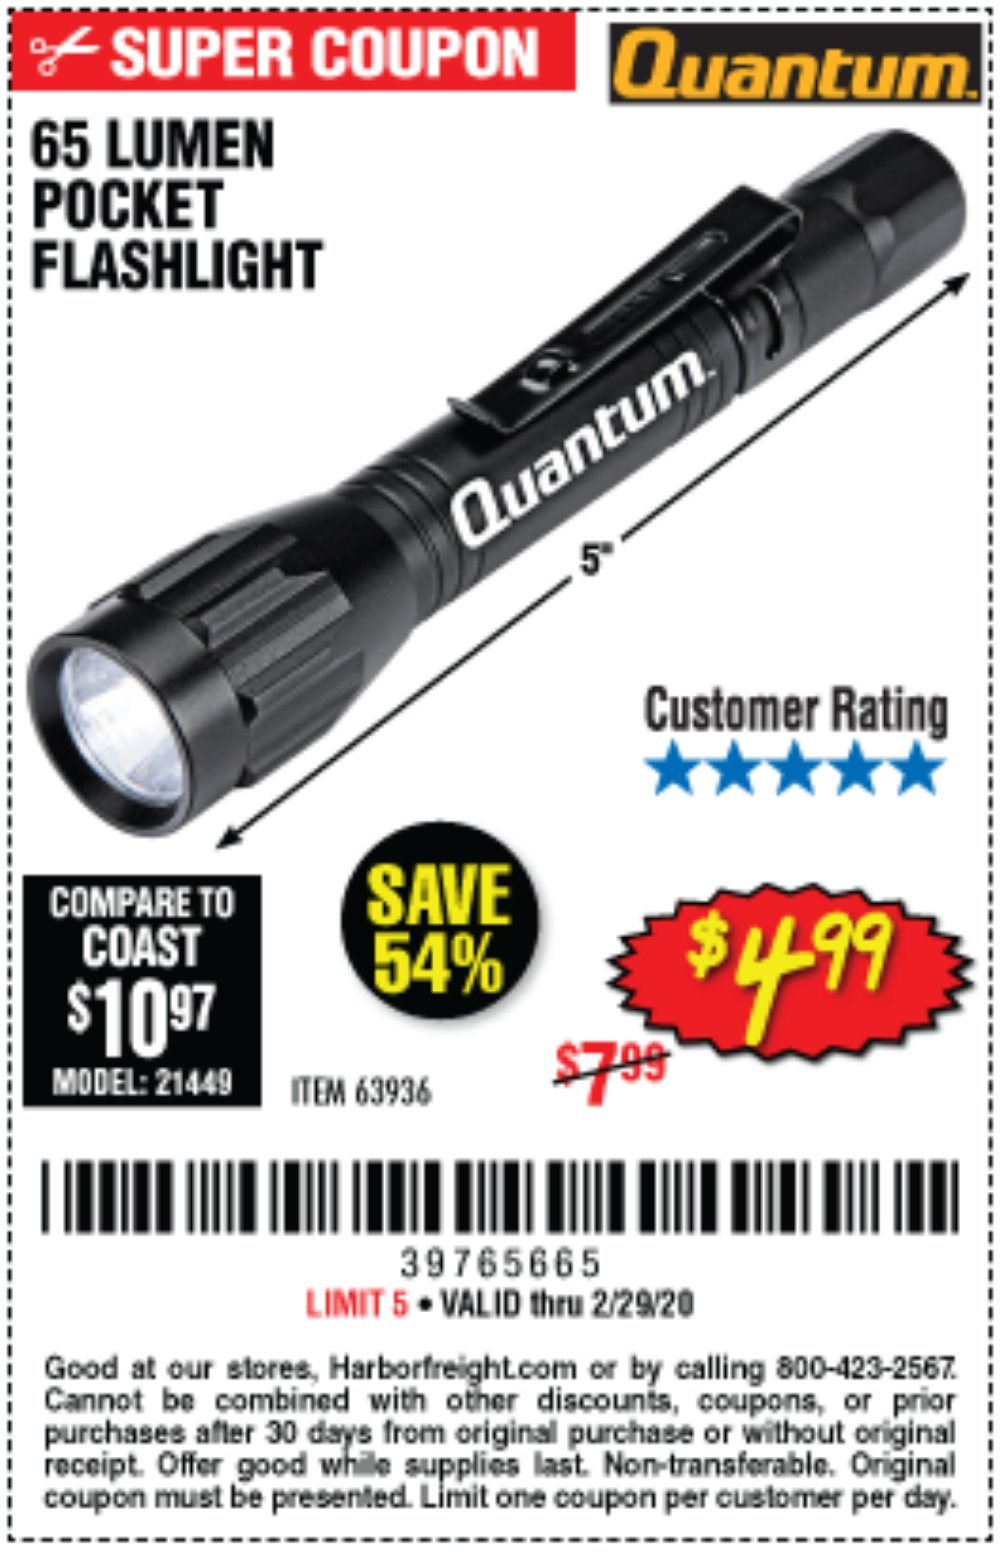 Harbor Freight Coupon, HF Coupons - 65 Lumens Pocket Flashlight